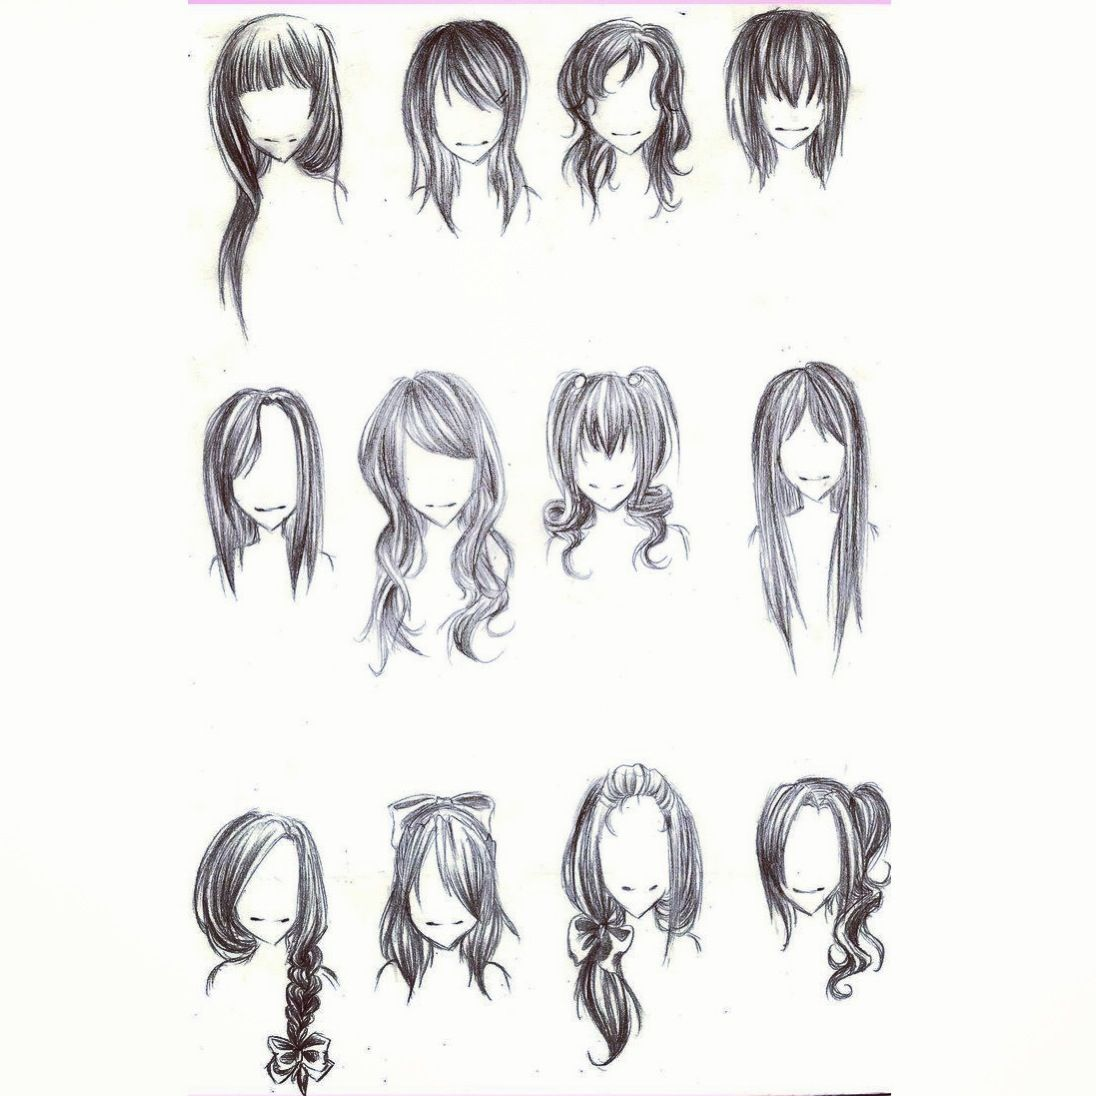 Long Straight Hair Drawings Www Pixshark Com Images Galleries With A Bite